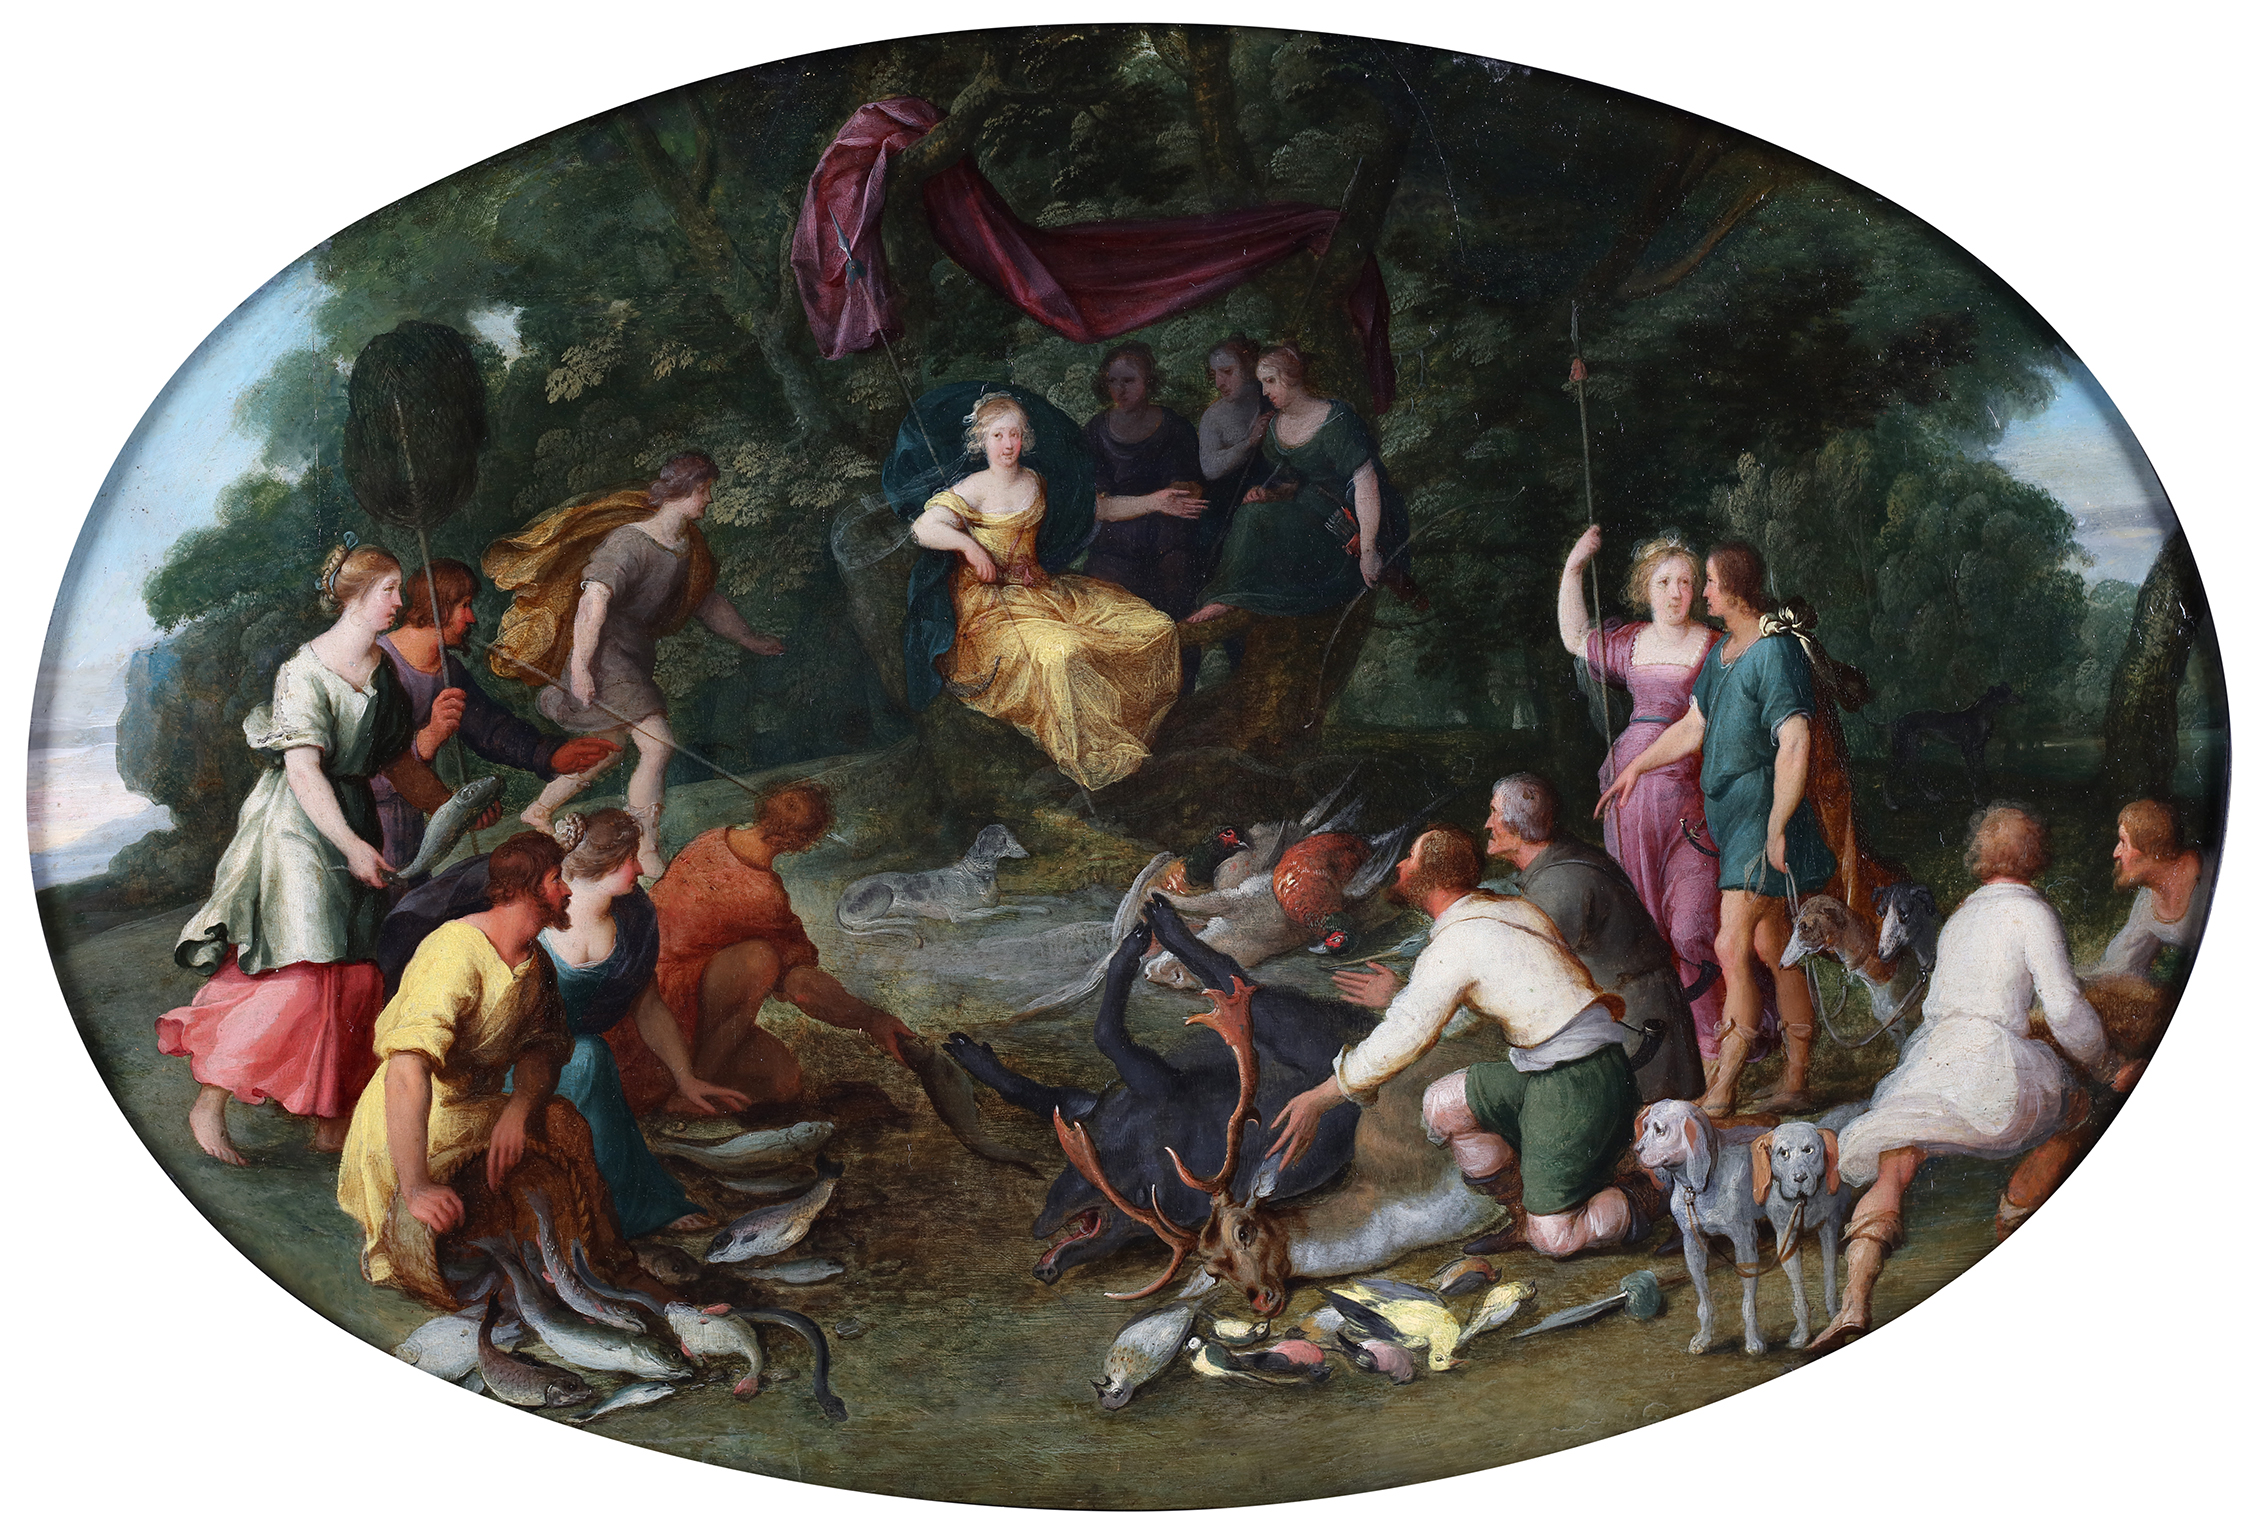 The goddess Diana surrounded by hunters and their successful catch